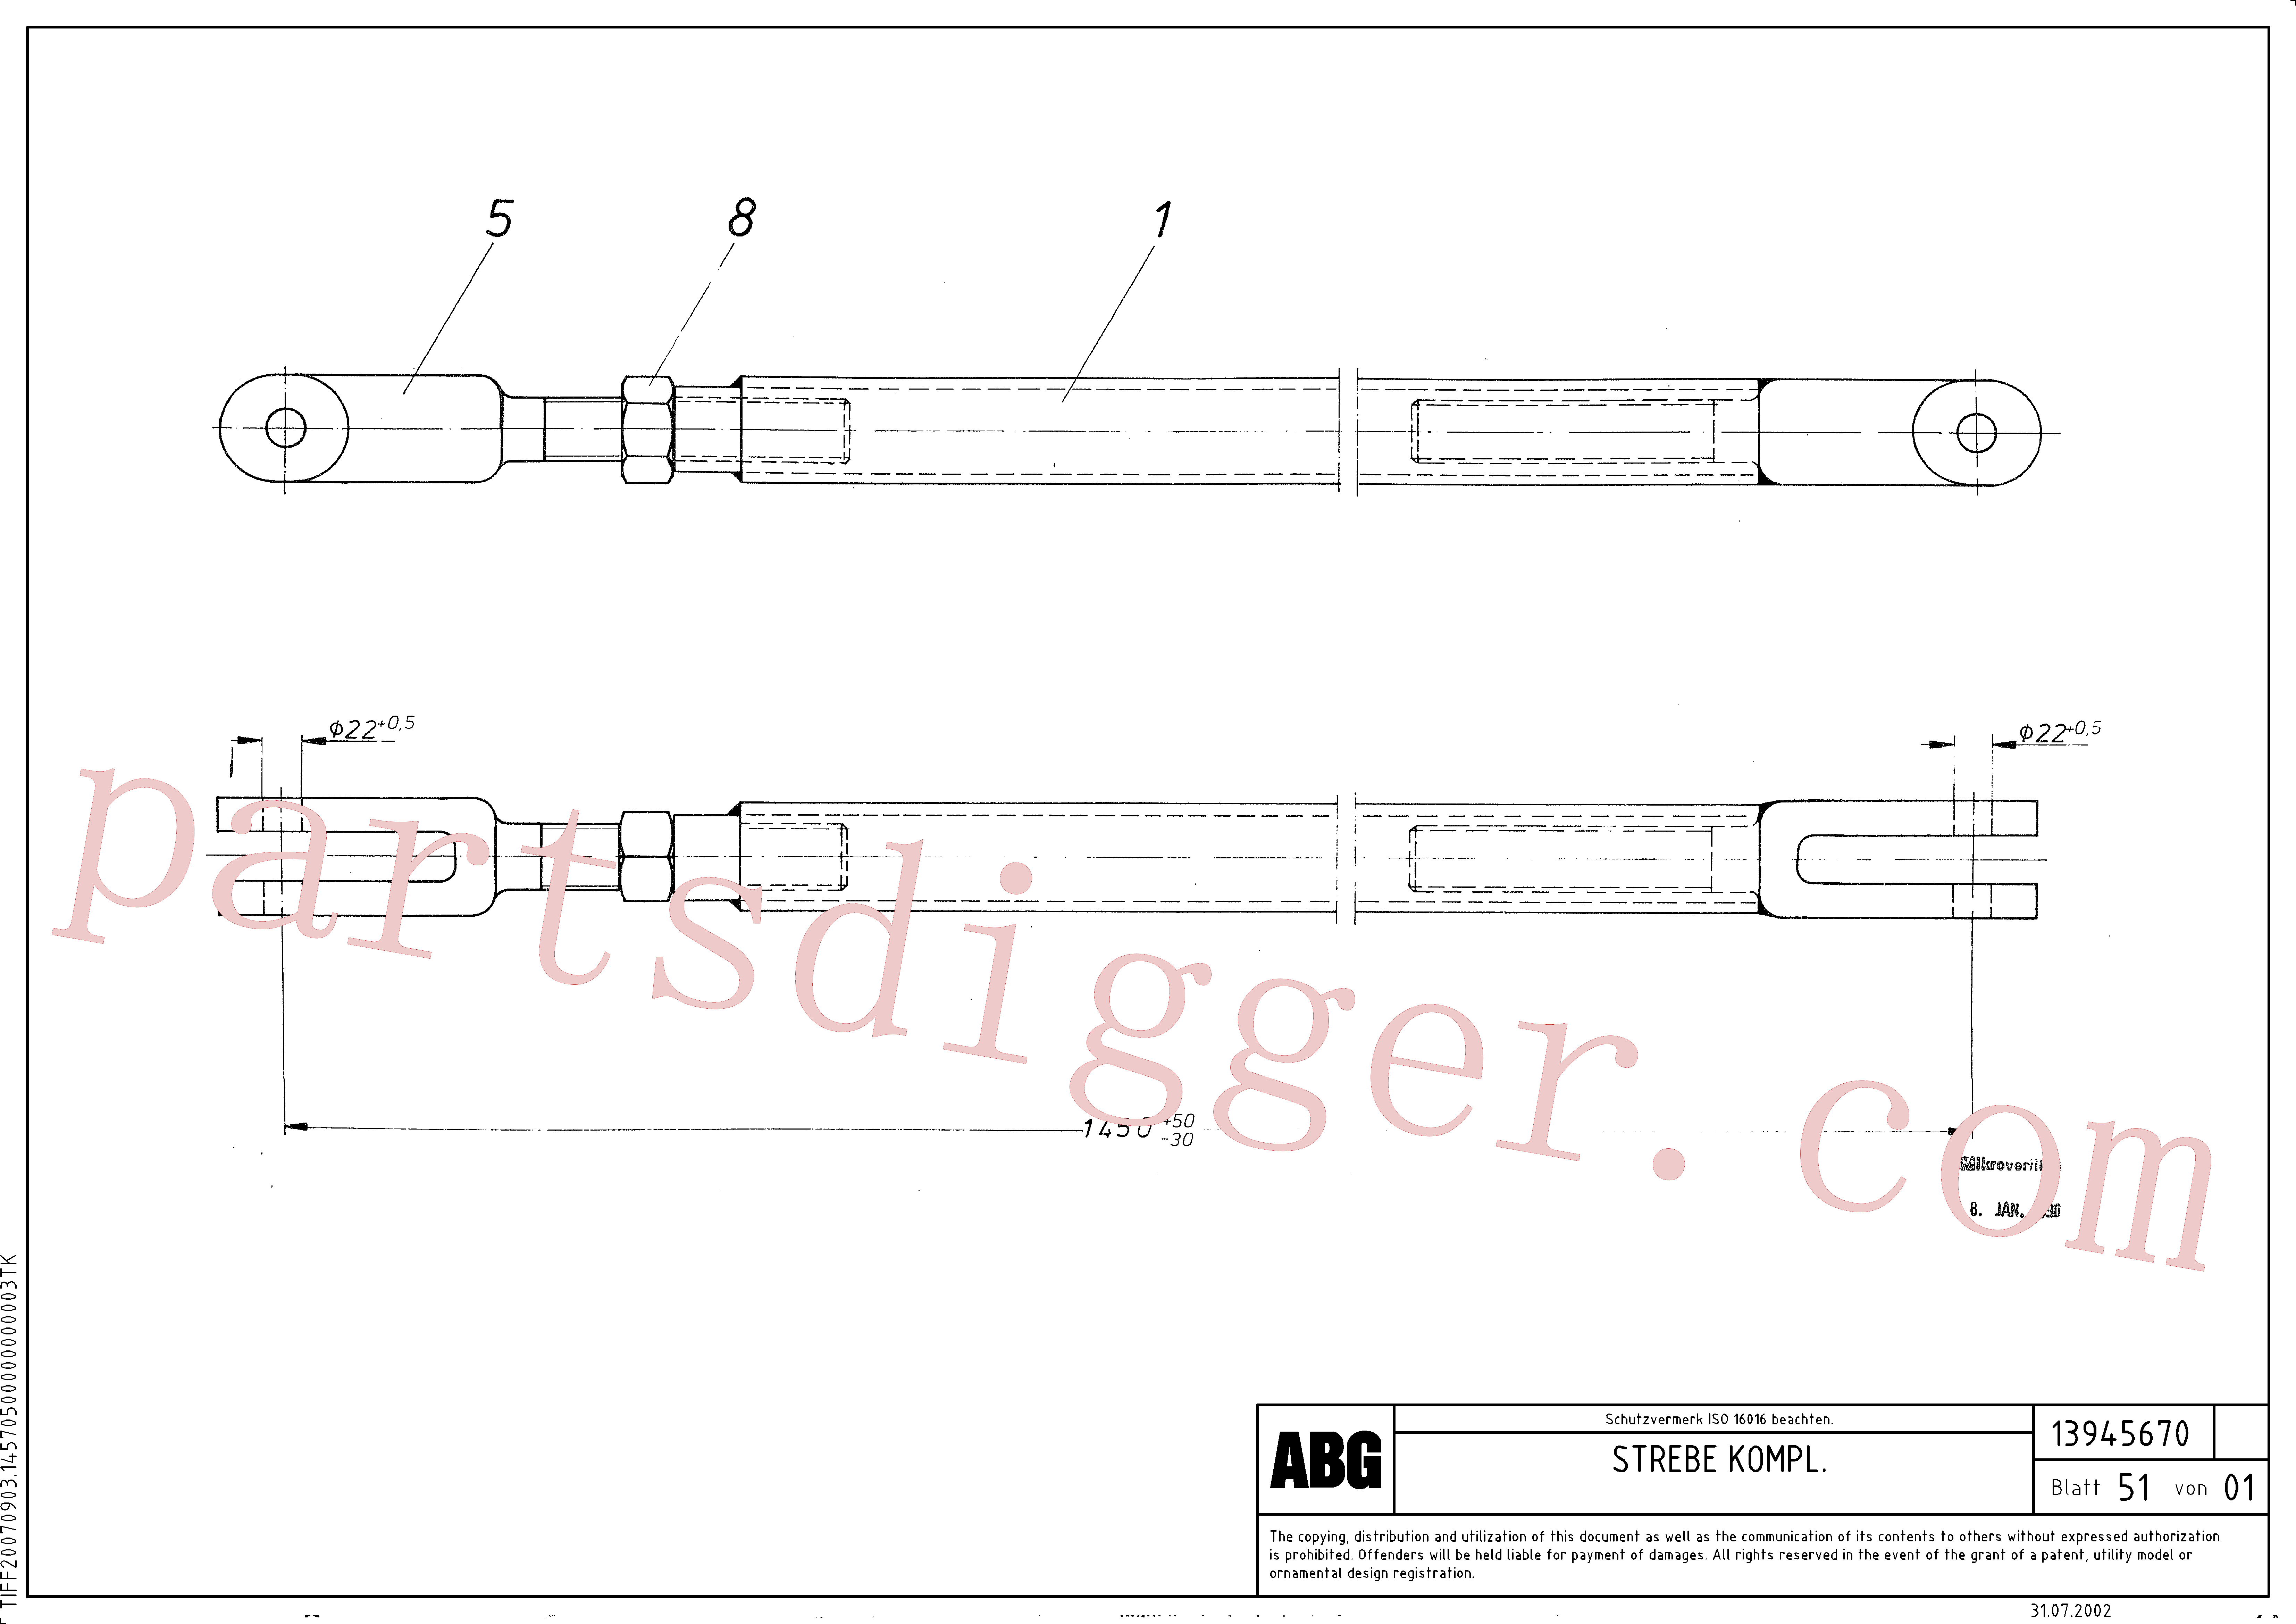 RM13938105 for Volvo Prop assembly for auger extension, Prop assembly for auger extension 6 m(1046128 assembly)